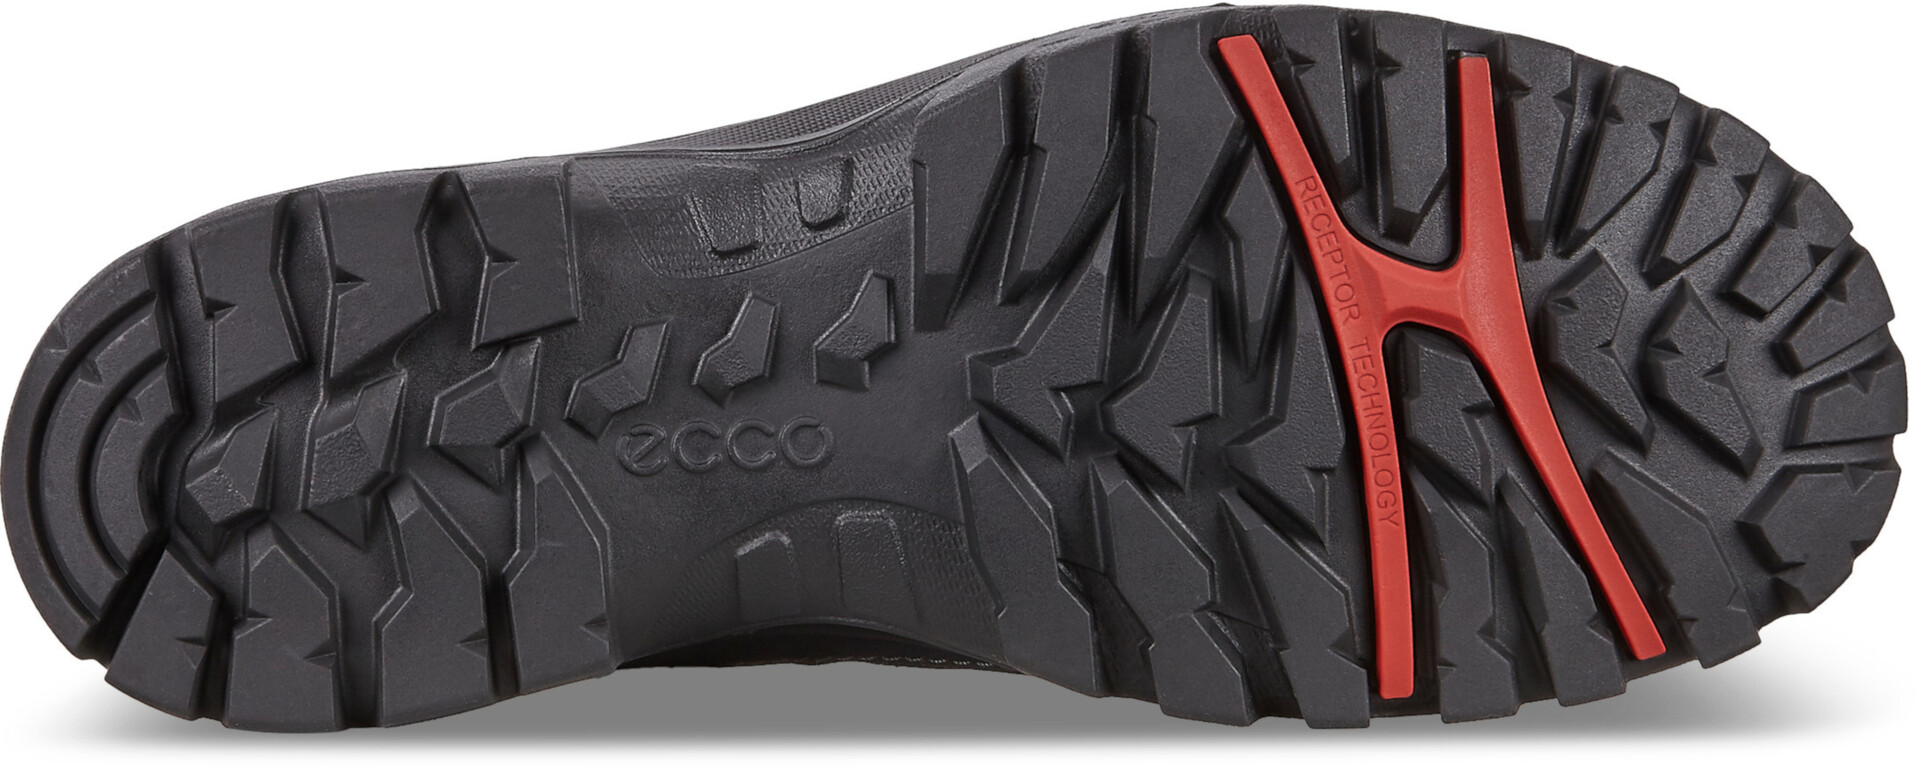 ecco slippers, ecco shoes Danmark sale Mænd Ecco xpedition